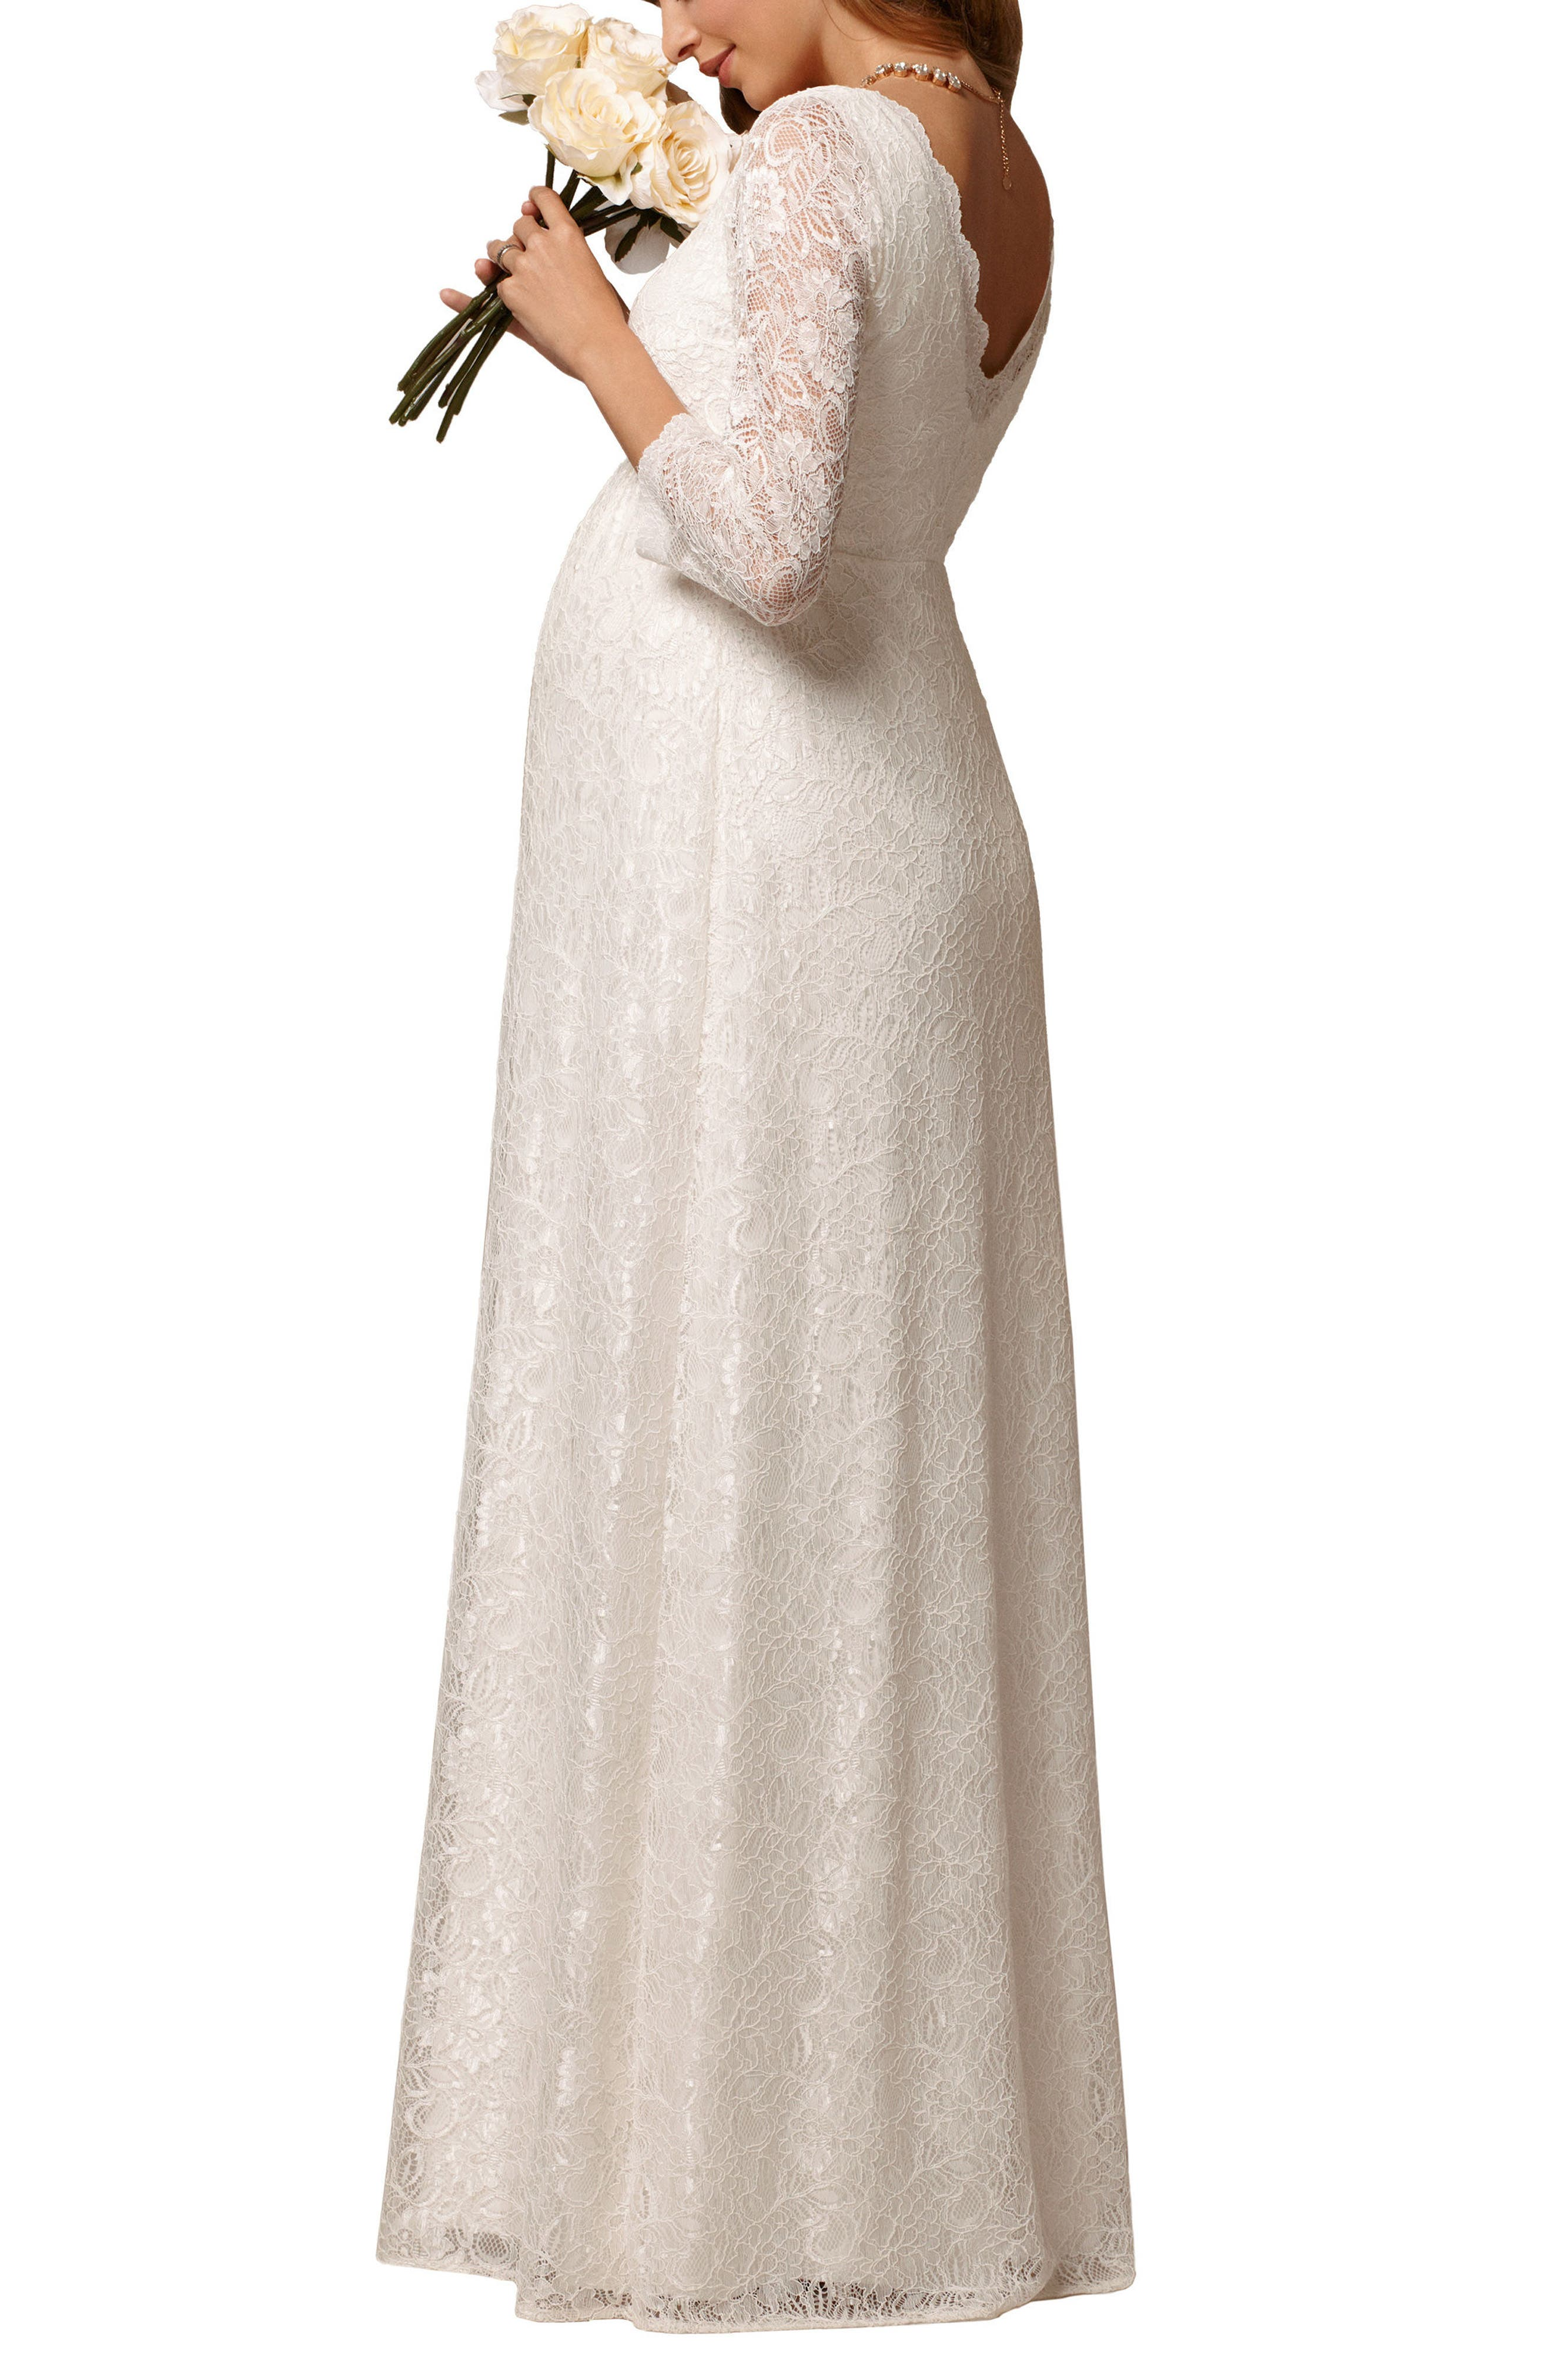 Chloe Lace Maternity Gown,                             Alternate thumbnail 2, color,                             Ivory